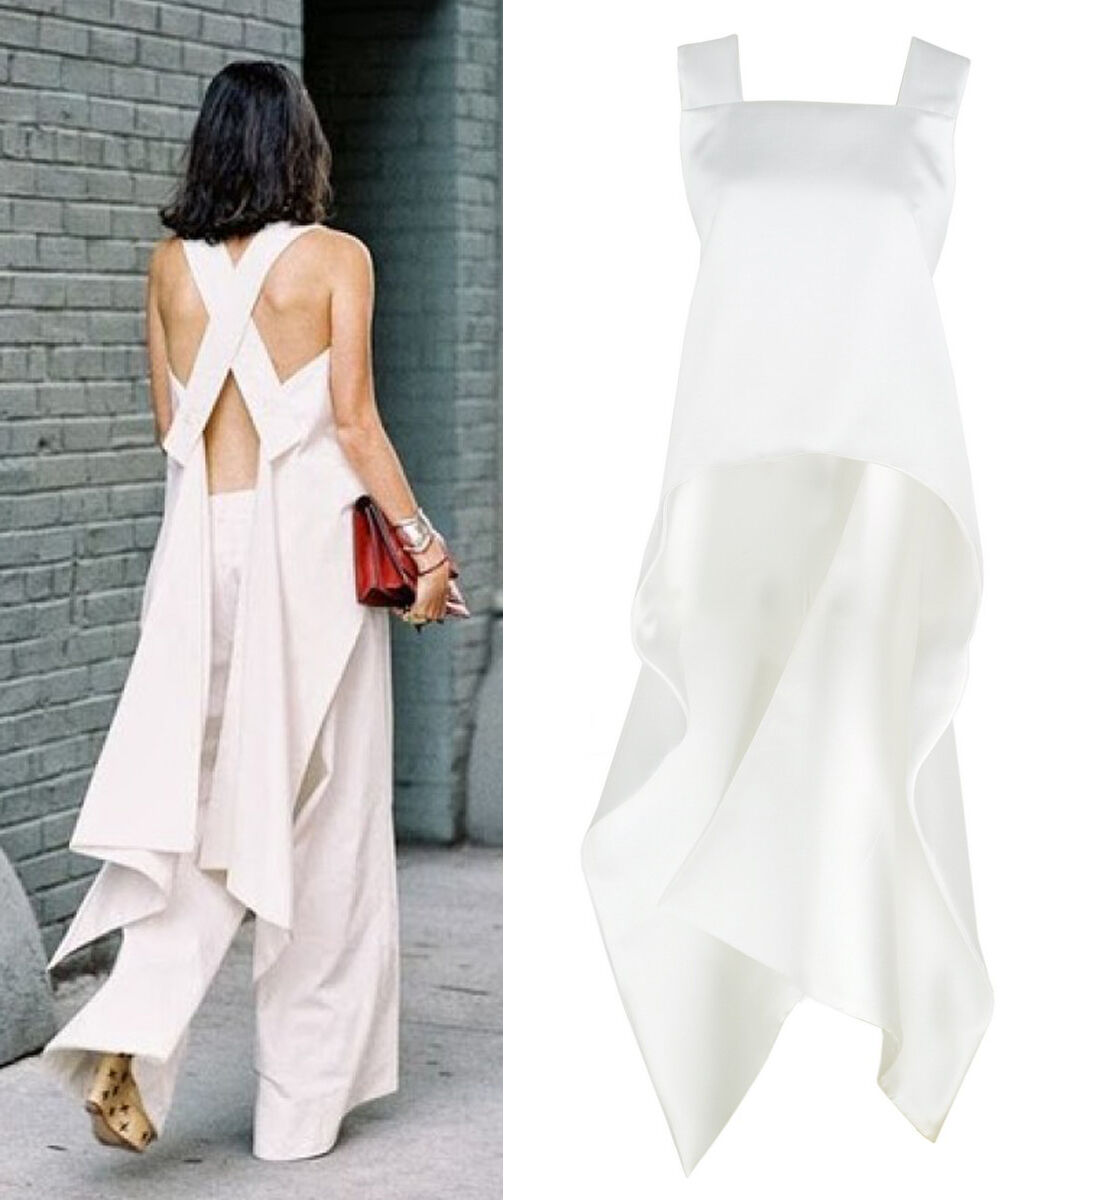 Weiß Strap Cross Over Open Back Waterfall Swing Top Satin Taffeta Street Sexy